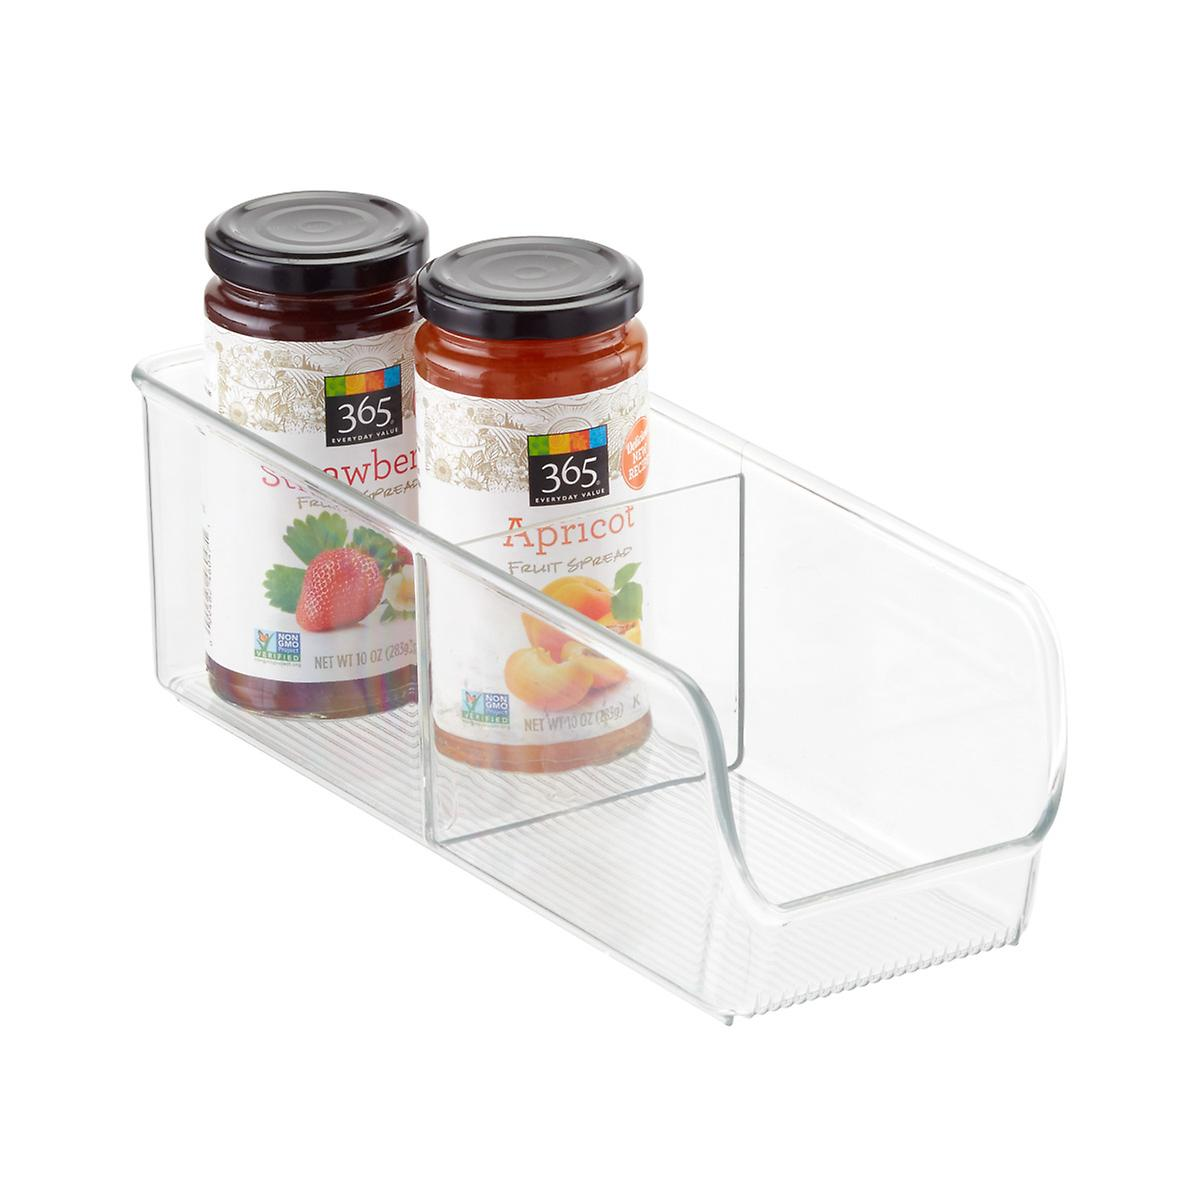 iDesign Linus 2-Section Divided Cabinet Organizer